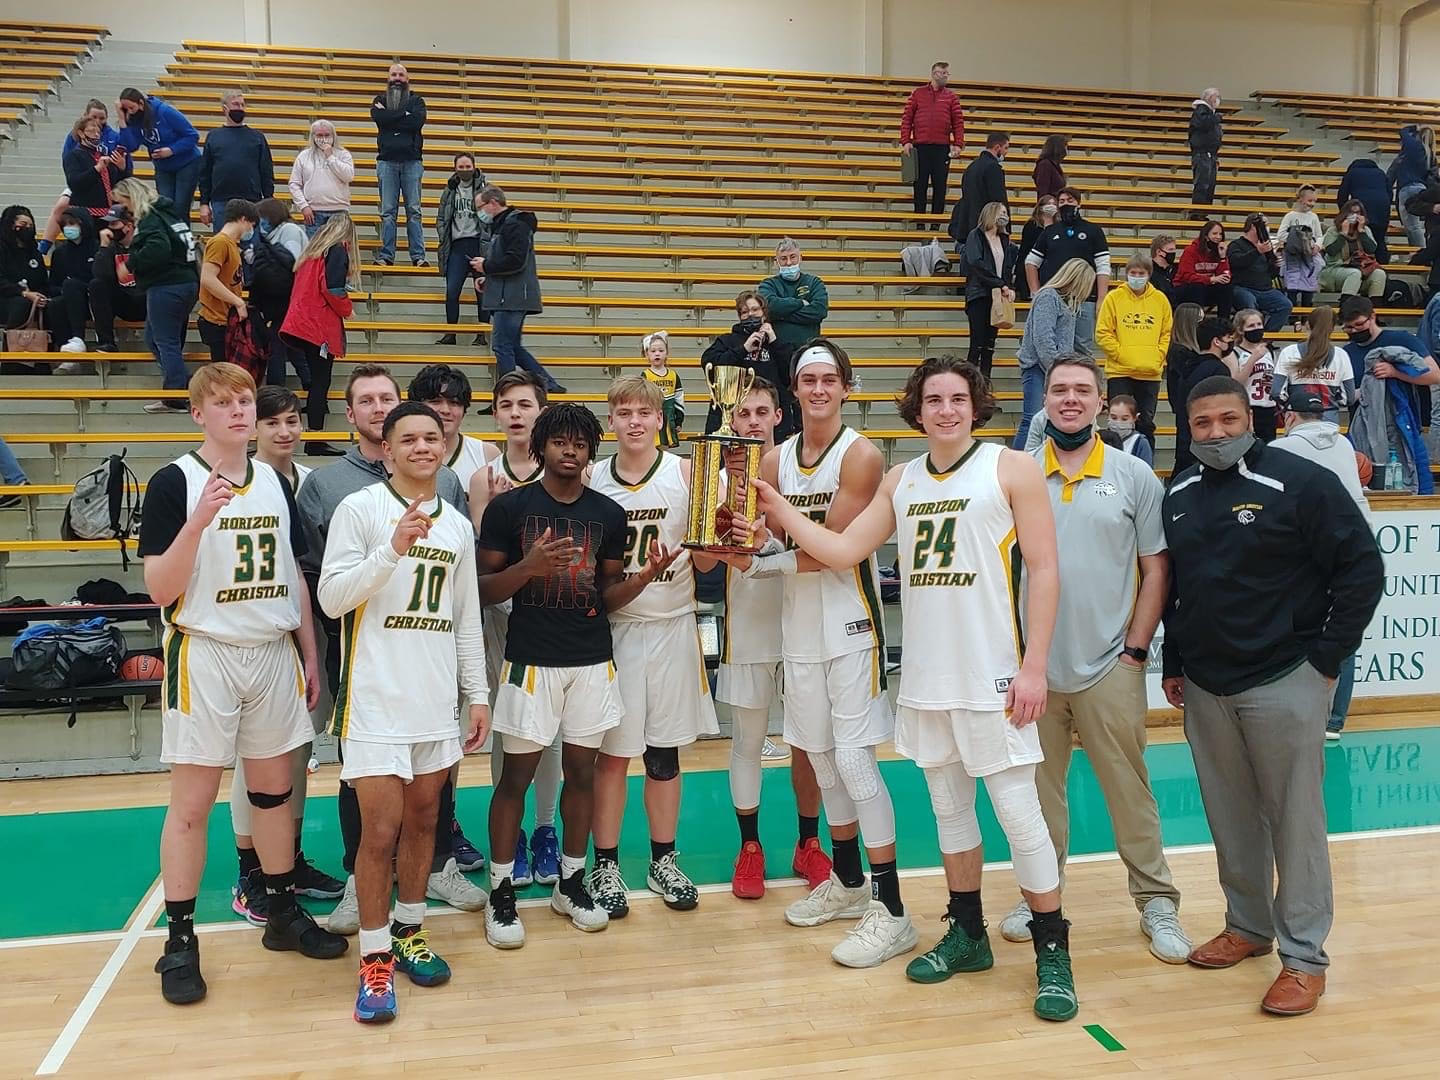 Lions hold off Knights to win first Regional Championship since 2014